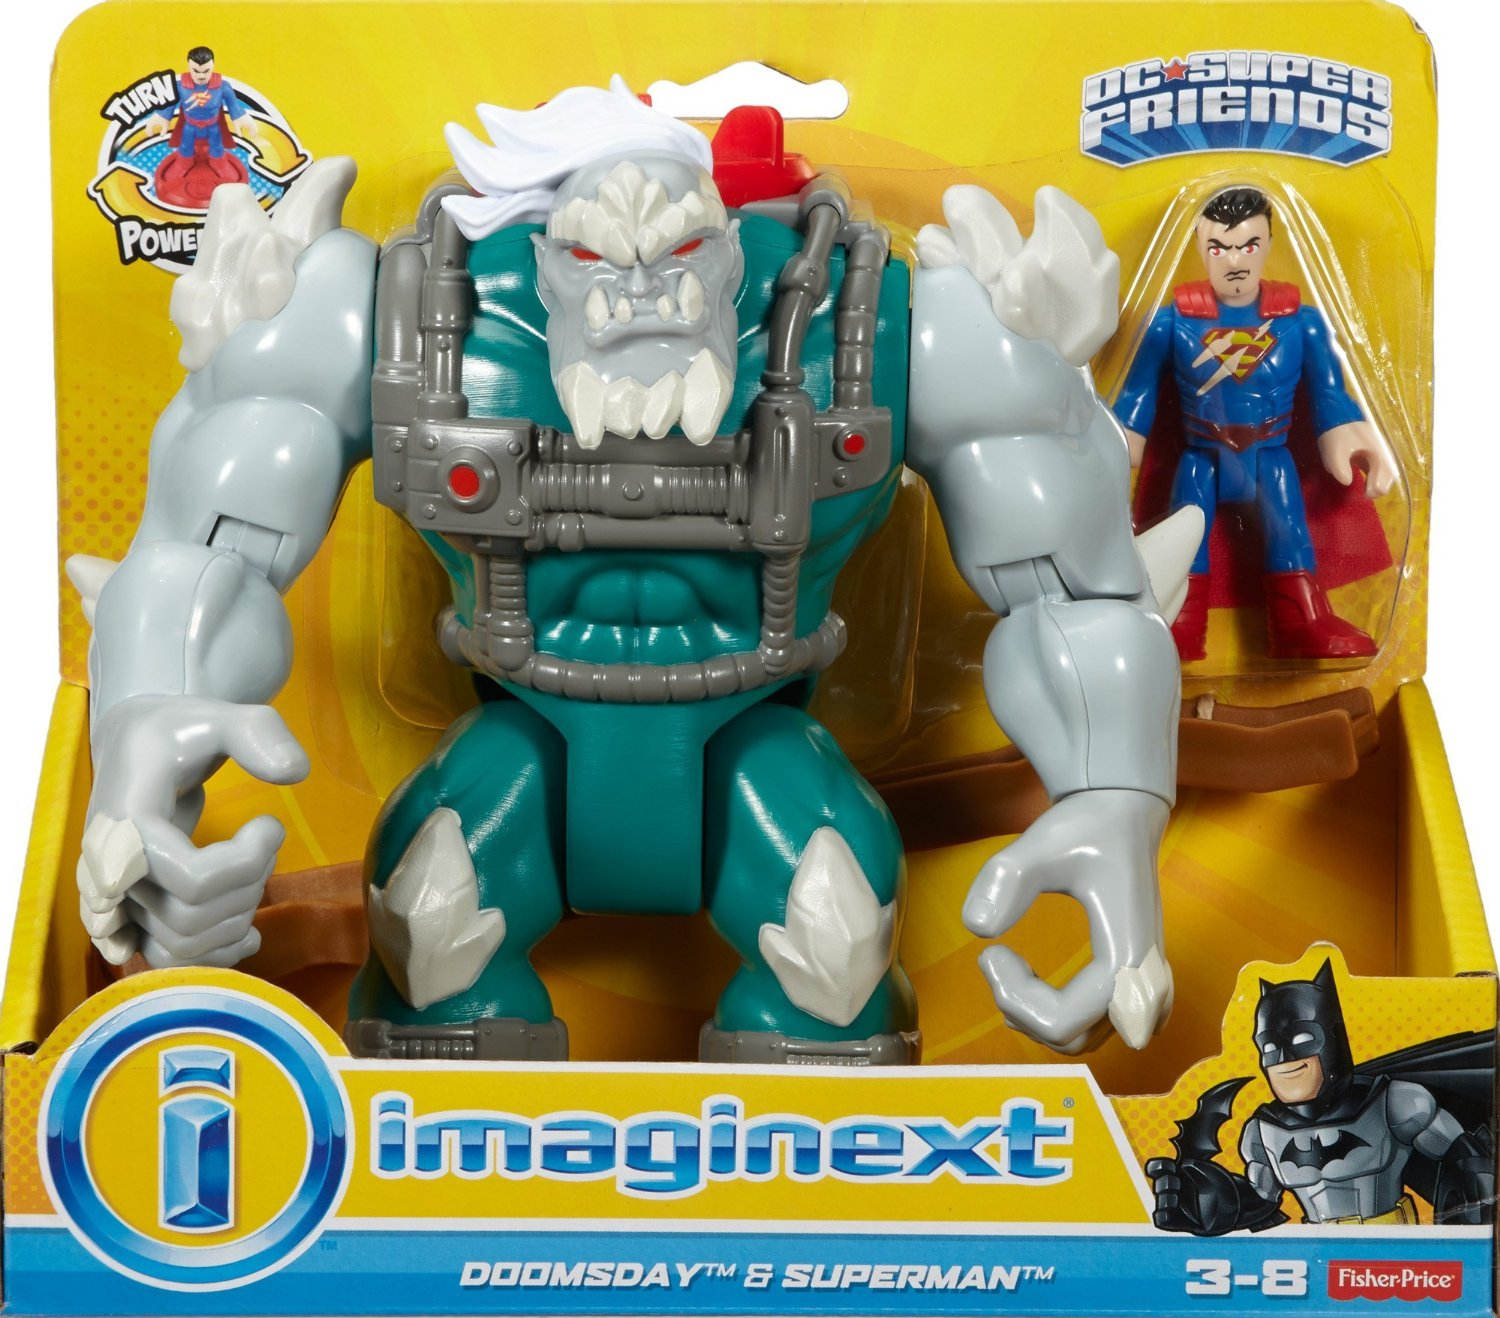 Fisher-Price Imaginext DC Super Friends Deluxe Doomsday With Superman $14.99 On Amazon